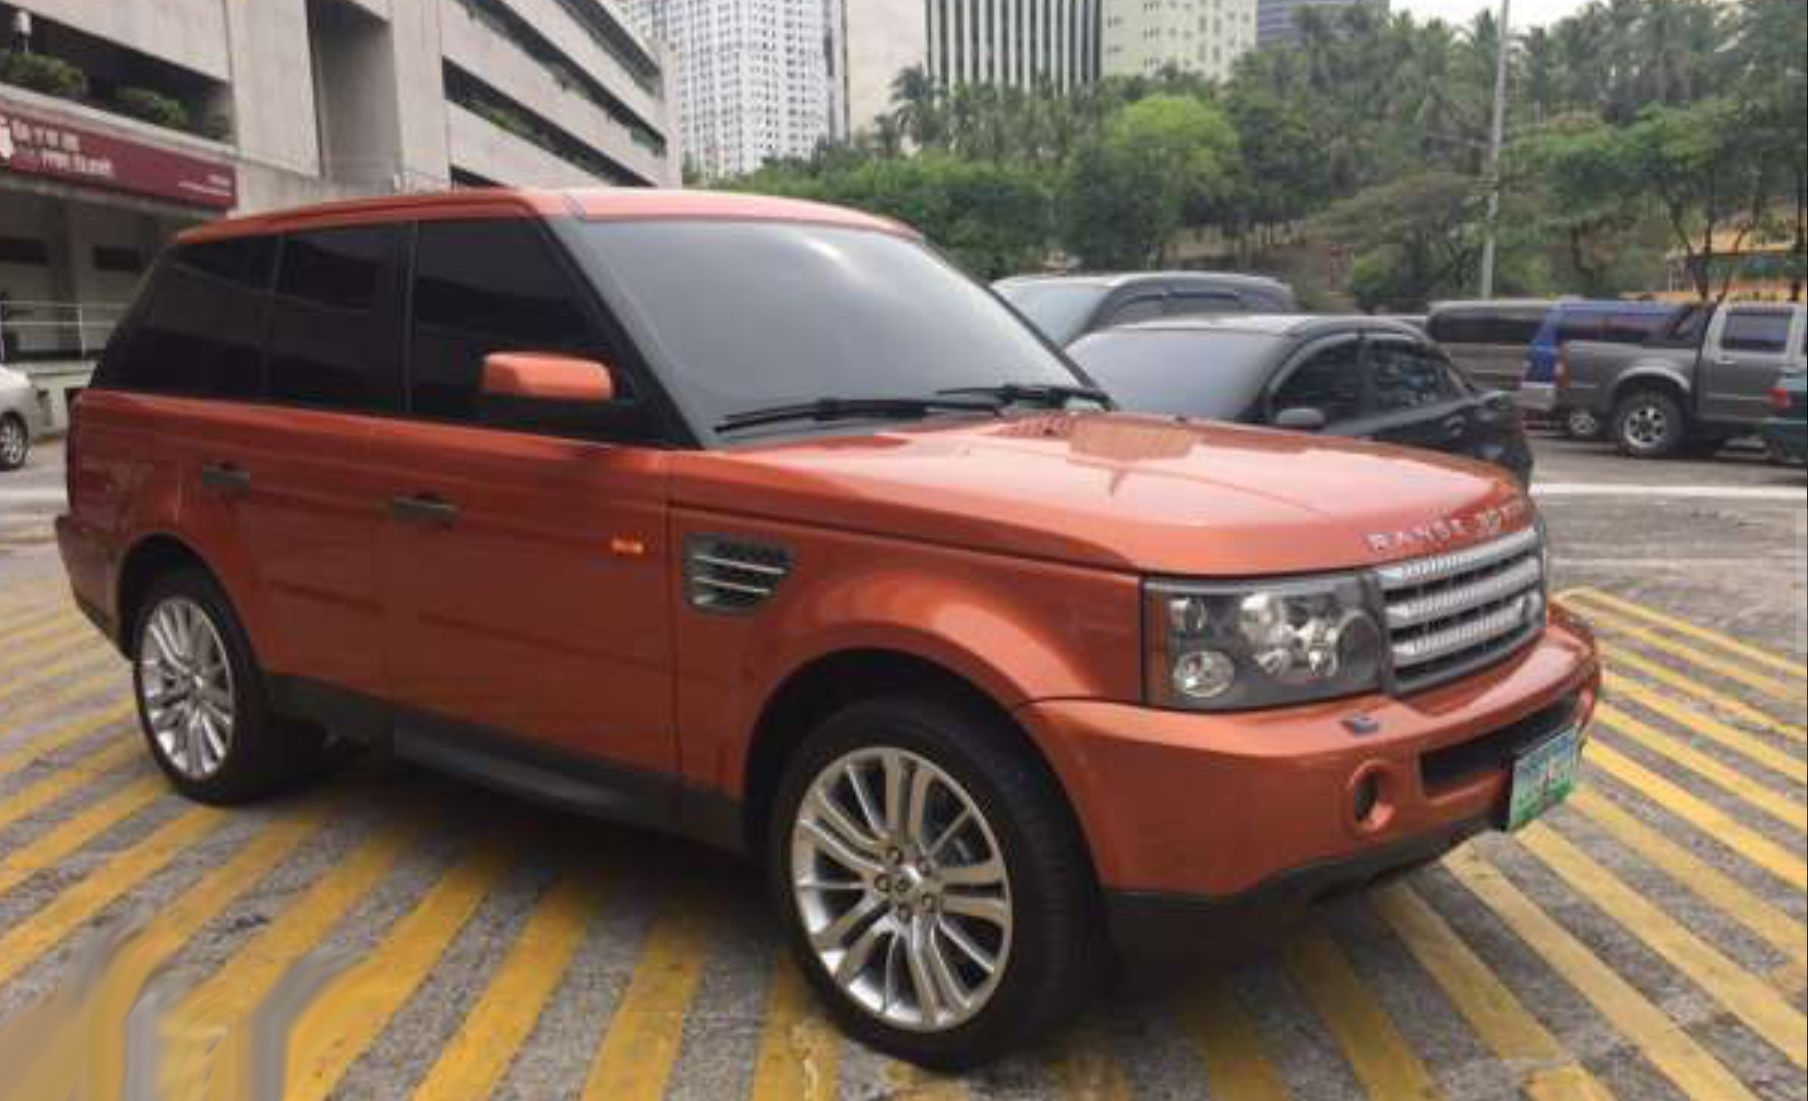 For Sale 2006 Range Rover Super Sport 4.4Li V8 Automatic